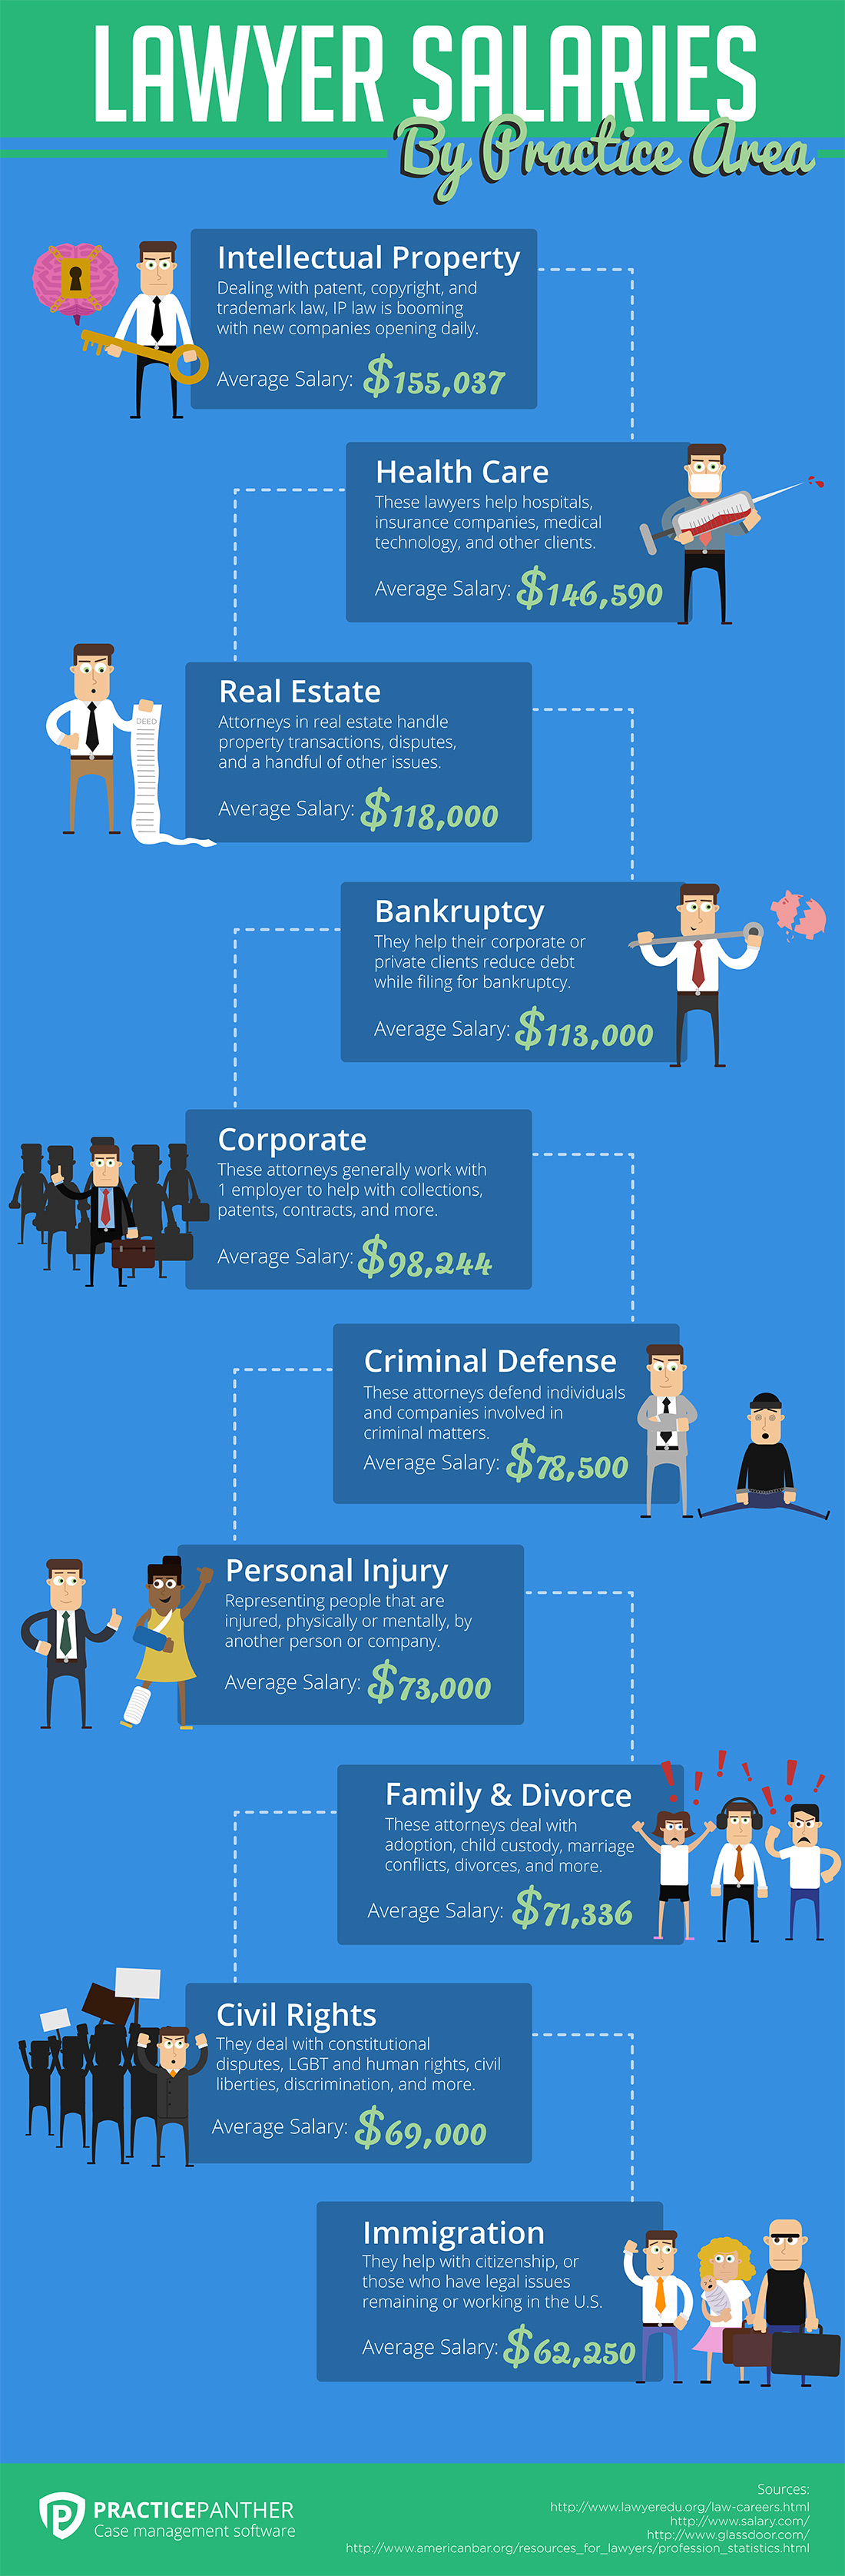 How Much Do Lawyers Make By Practice Area Infographic